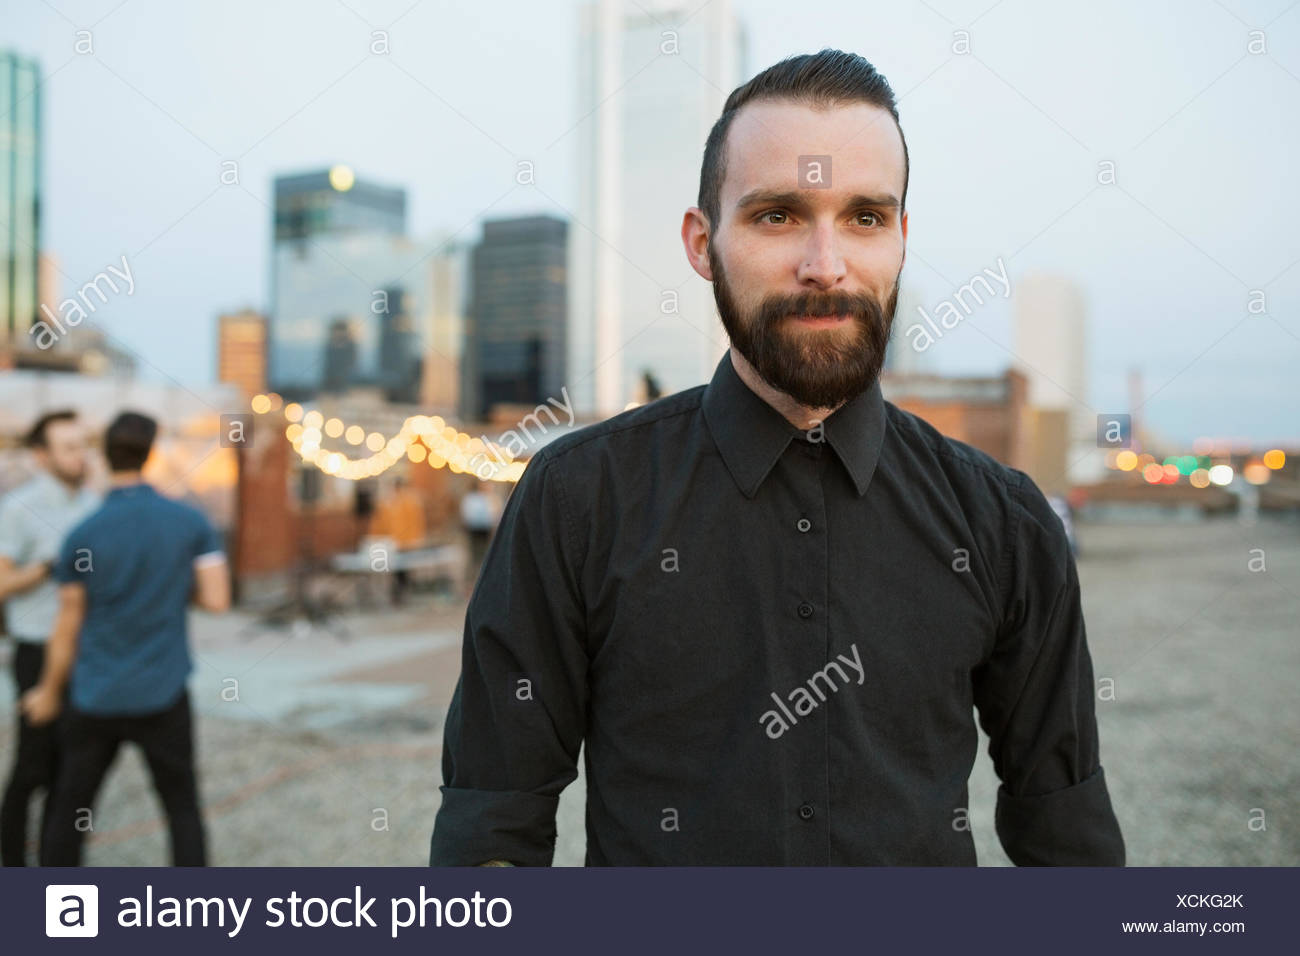 Serious man on urban rooftop - Stock Image